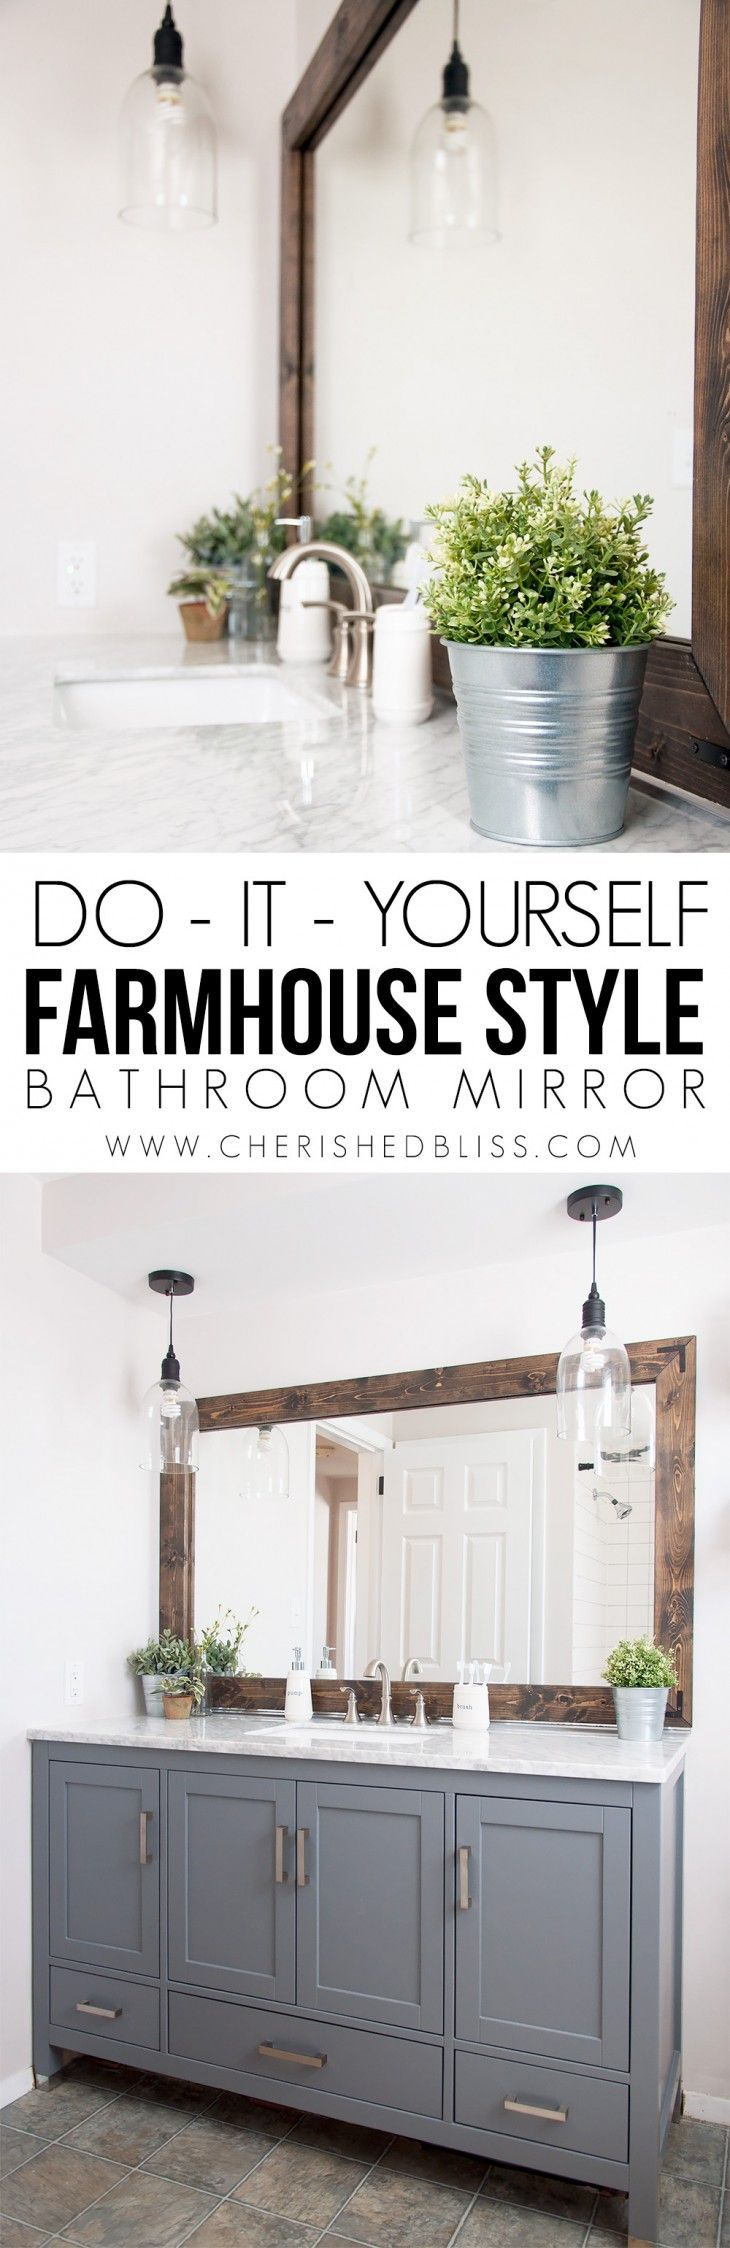 diy farmhouse bathroom mirror tutorial awesome farmhouse lighting fixtures furniture